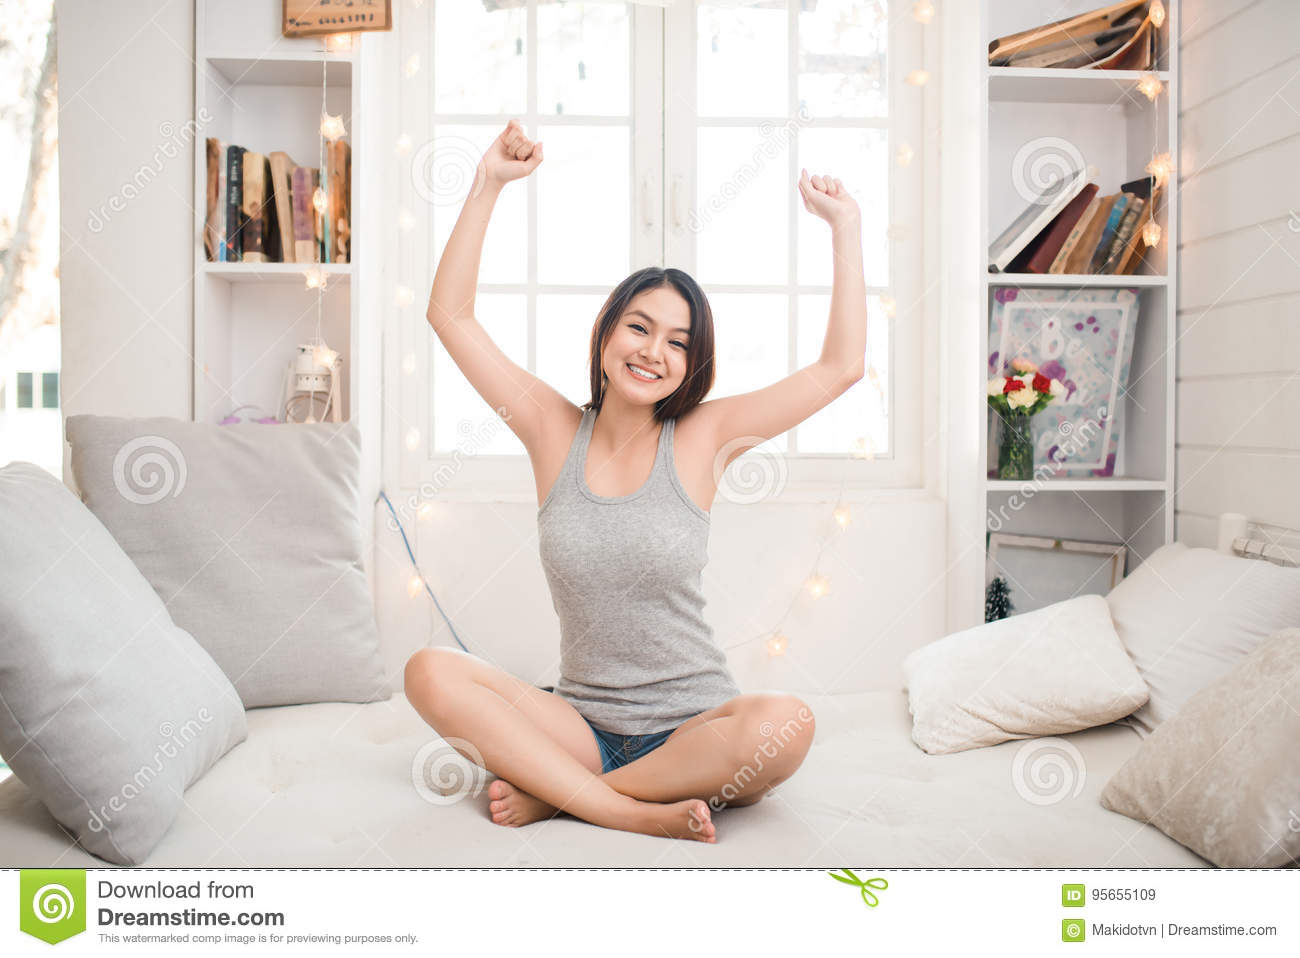 Woman stretching in bed after waking up, back view, entering a day happy and relaxed after good night sleep. Sweet dreams, good mo